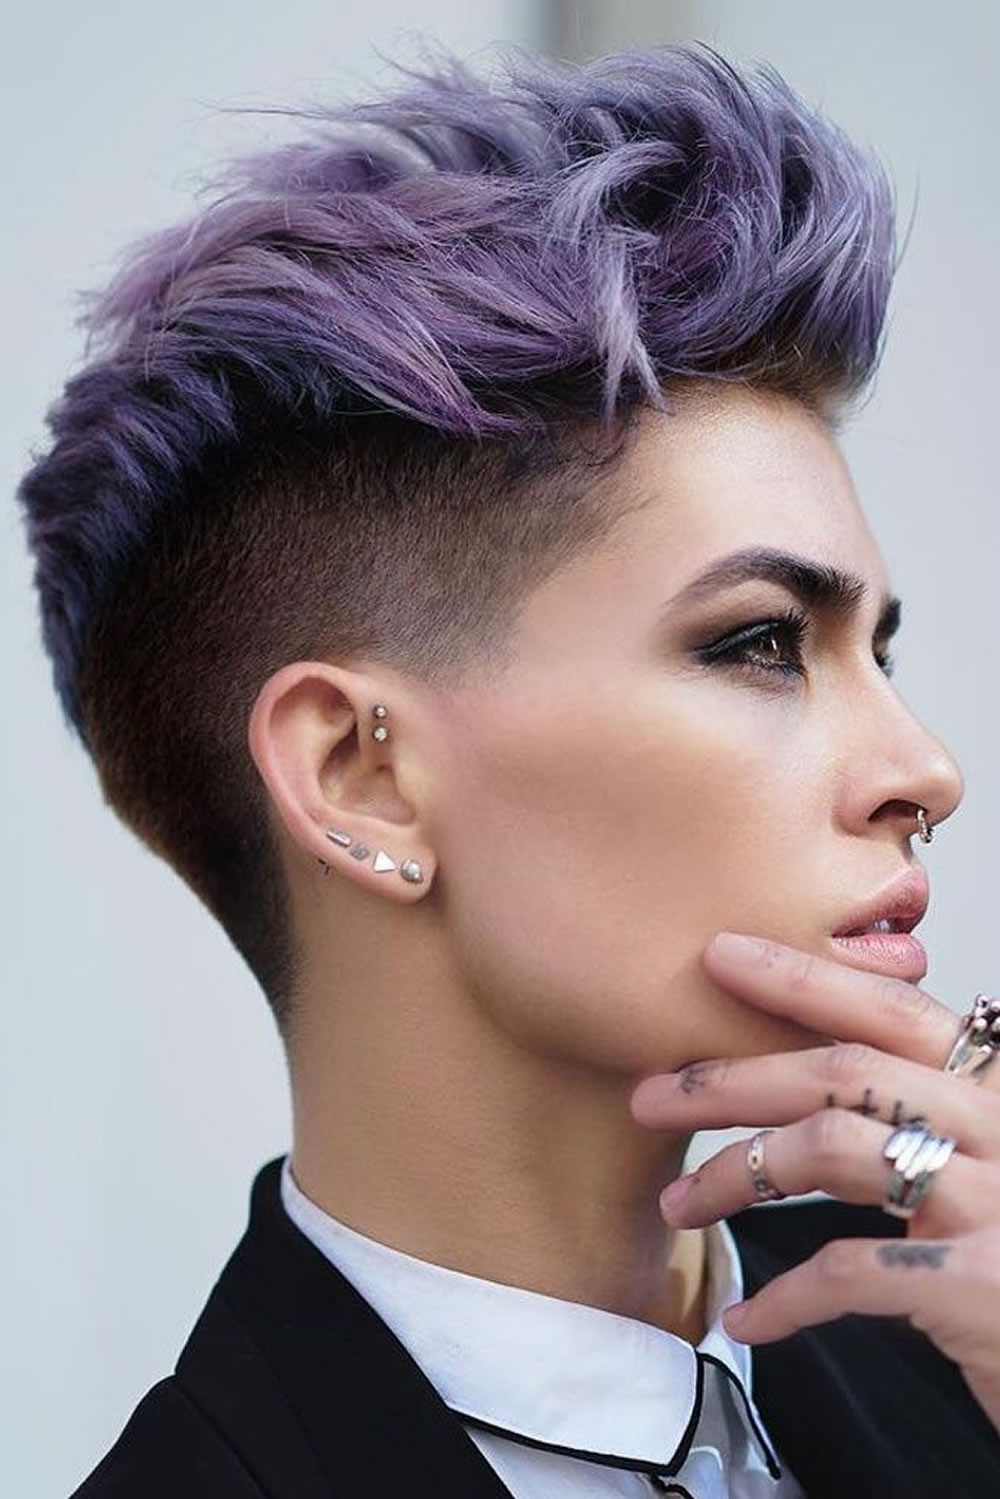 Best ideas about Shaved Undercut Hairstyles . Save or Pin Black Shaved Hairstyles 2017 HairStyles Now.